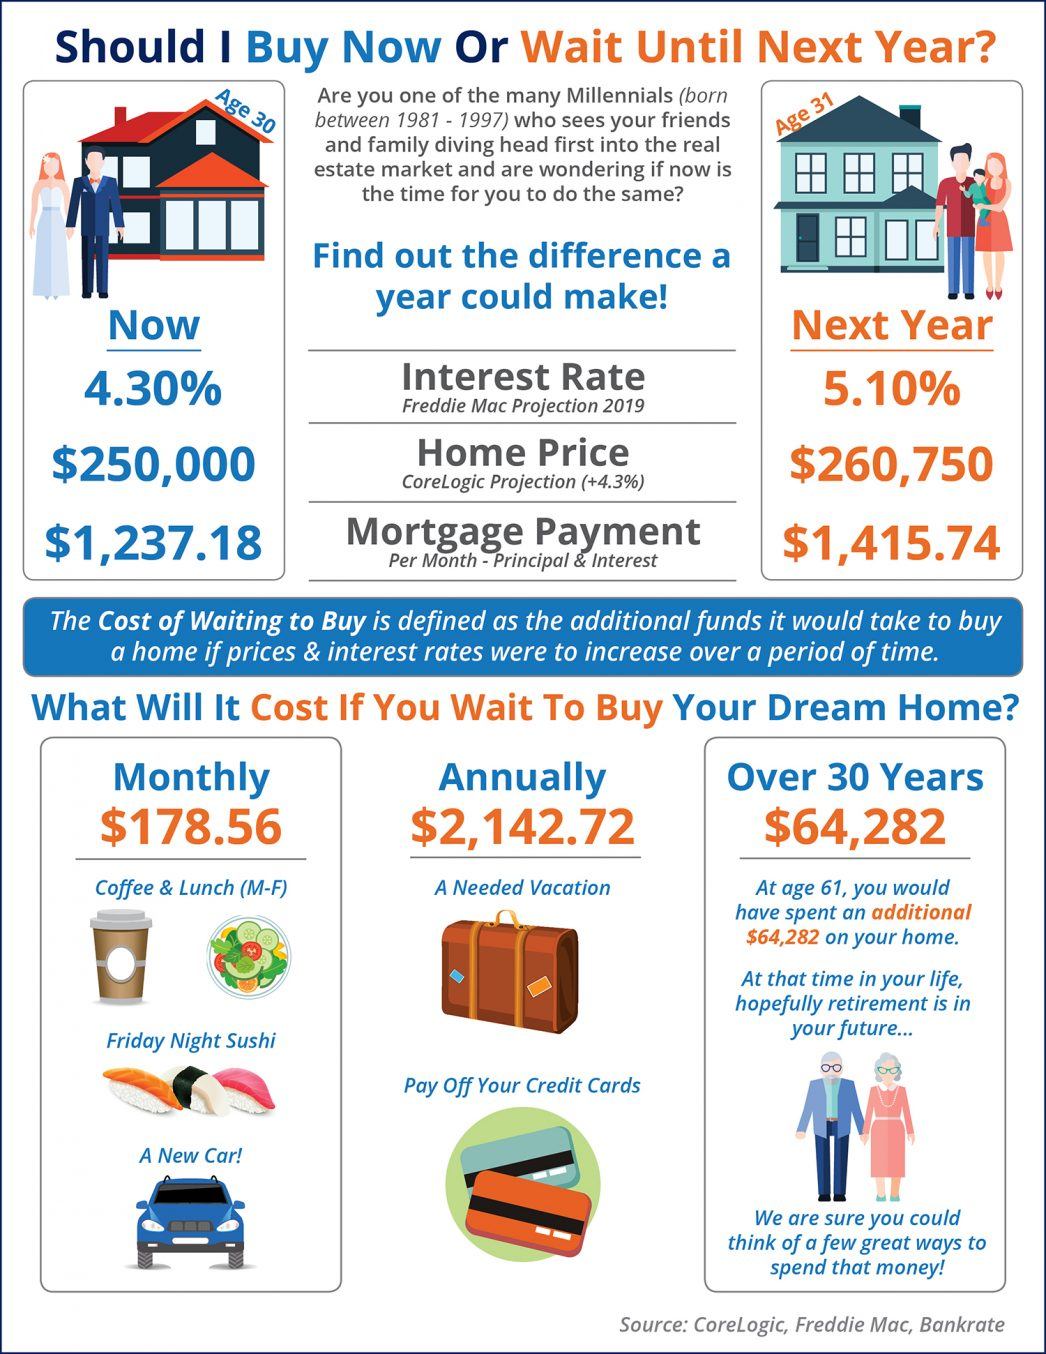 Cost-of-Waiting-STM-1046x1354.jpg